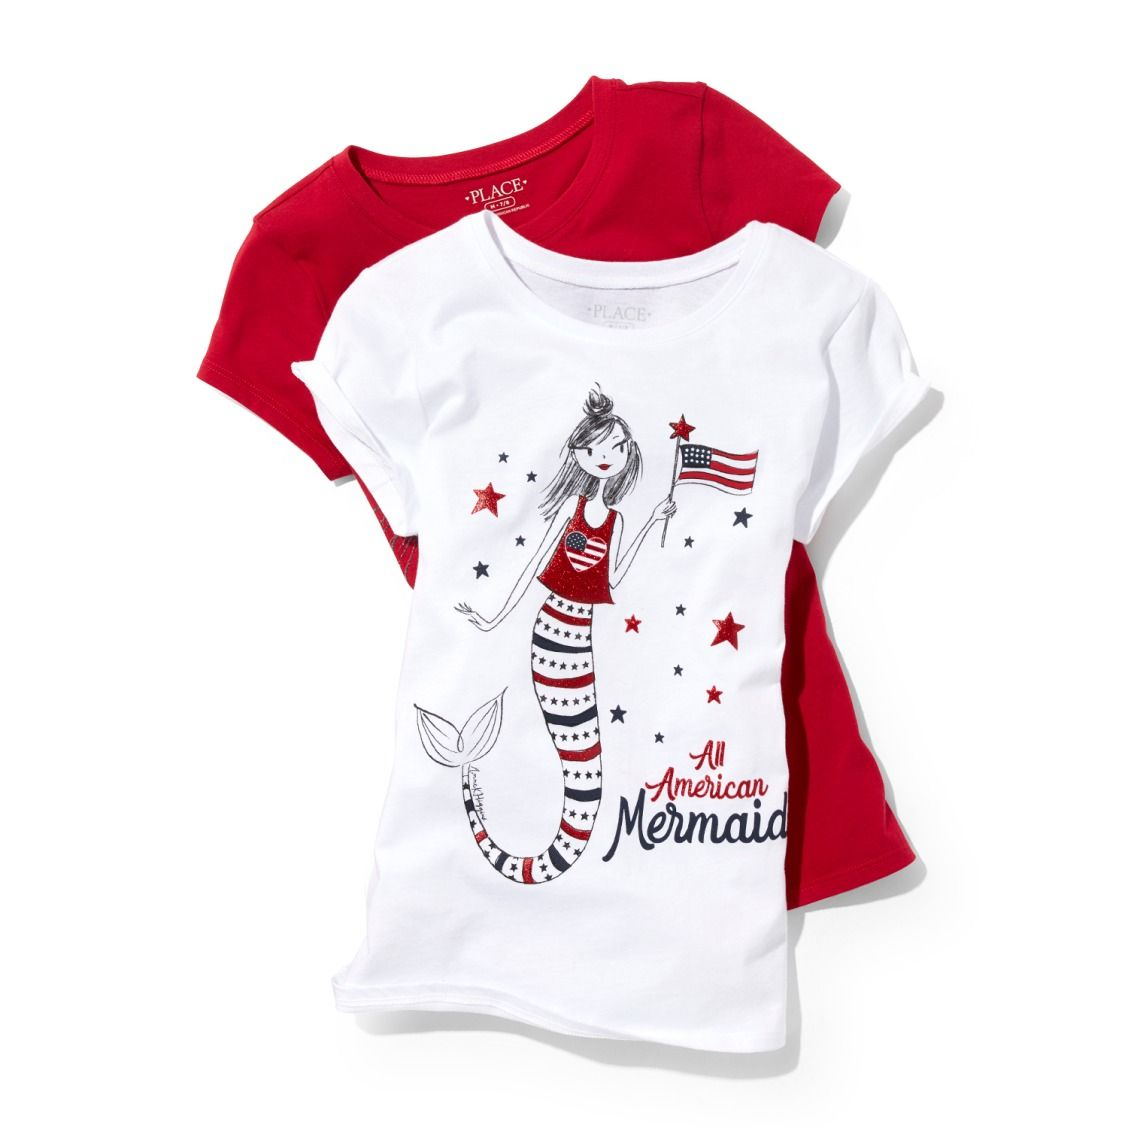 99ffd2e68f9b1 Girls' fashion | Kids' clothes | Graphic tee | Memorial Day Weekend ...